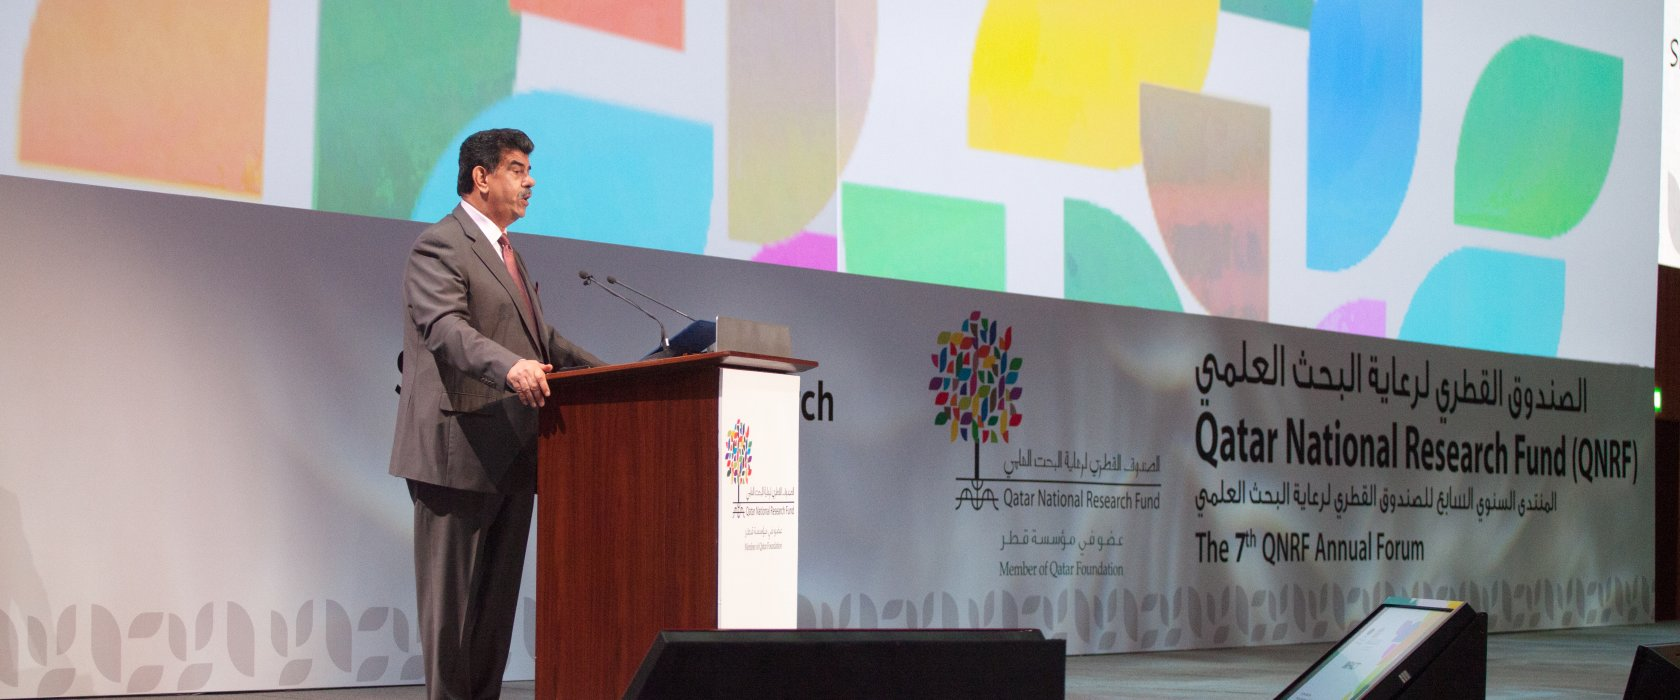 COM039 - Qatar National Research Fund (QNRF)